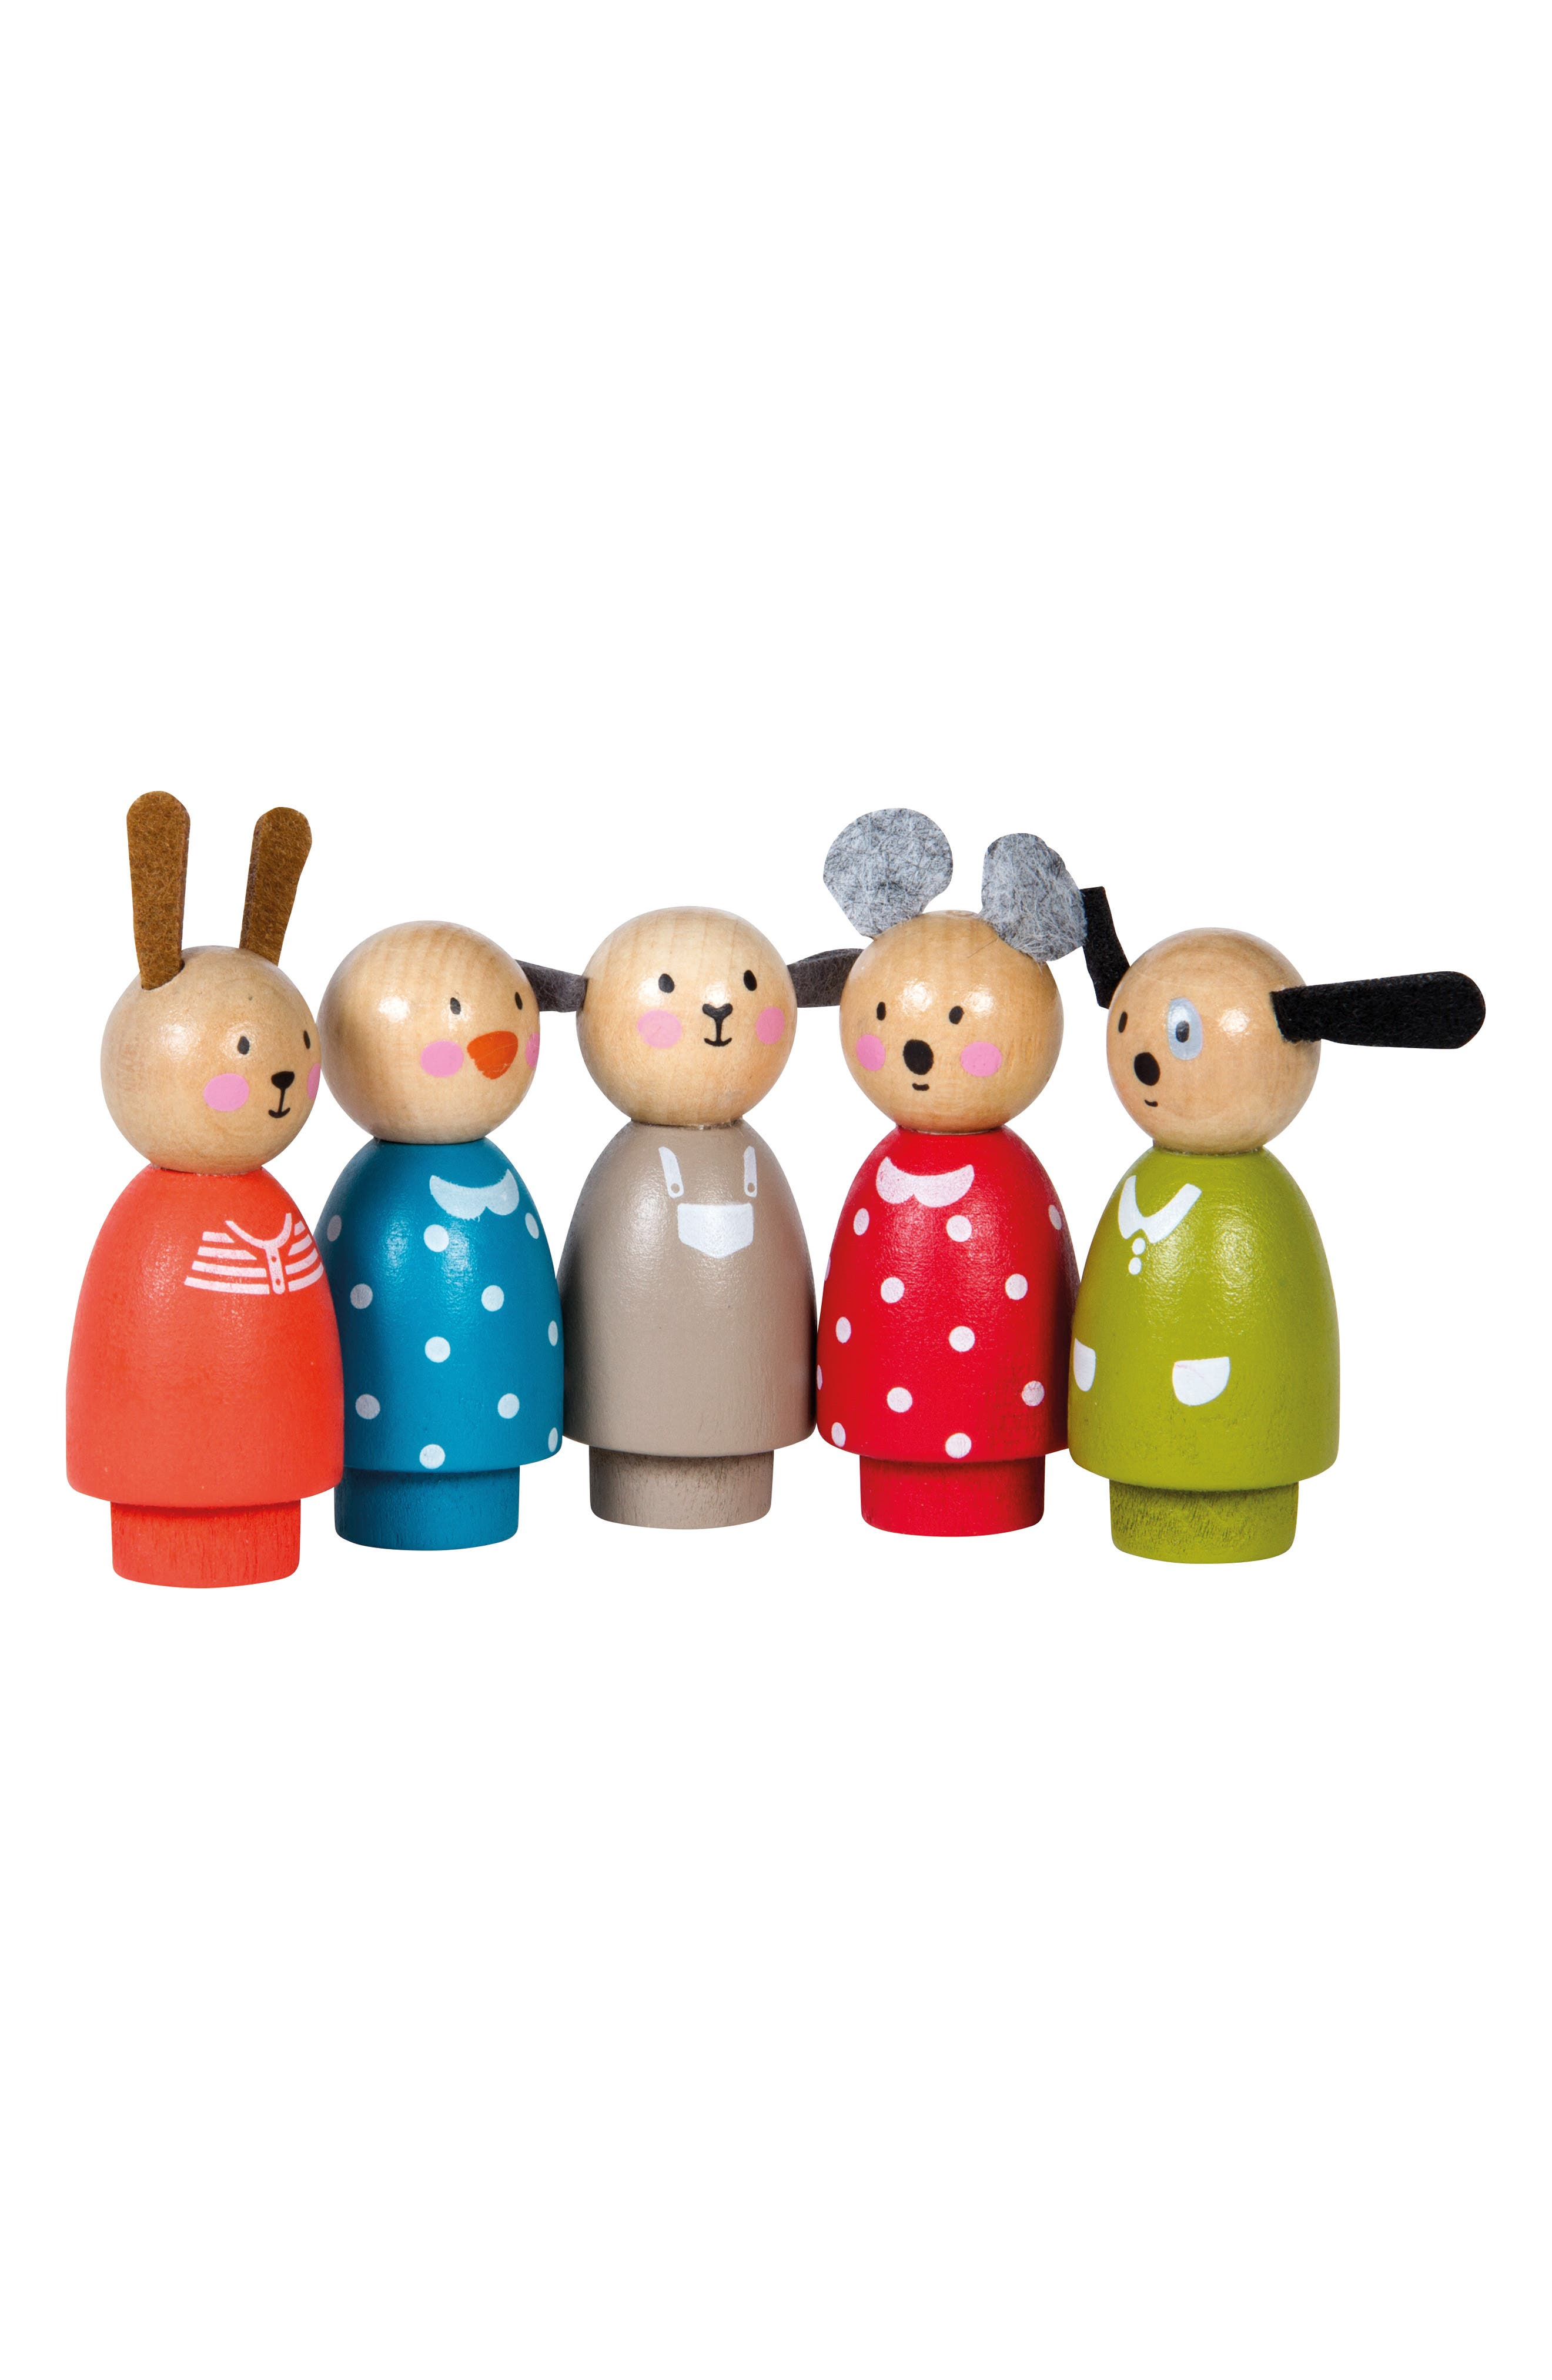 Moulin Roty La Grande Famille 5Piece Wooden Character Set